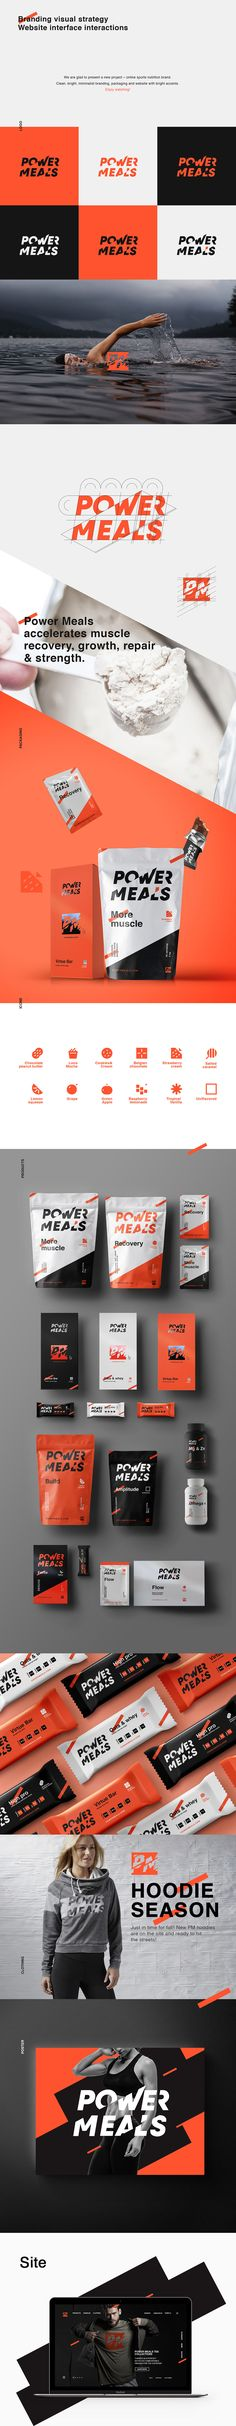 "Consulta este proyecto @Behance: ""Power Meals"" https://www.behance.net/gallery/43196329/Power-Meals"